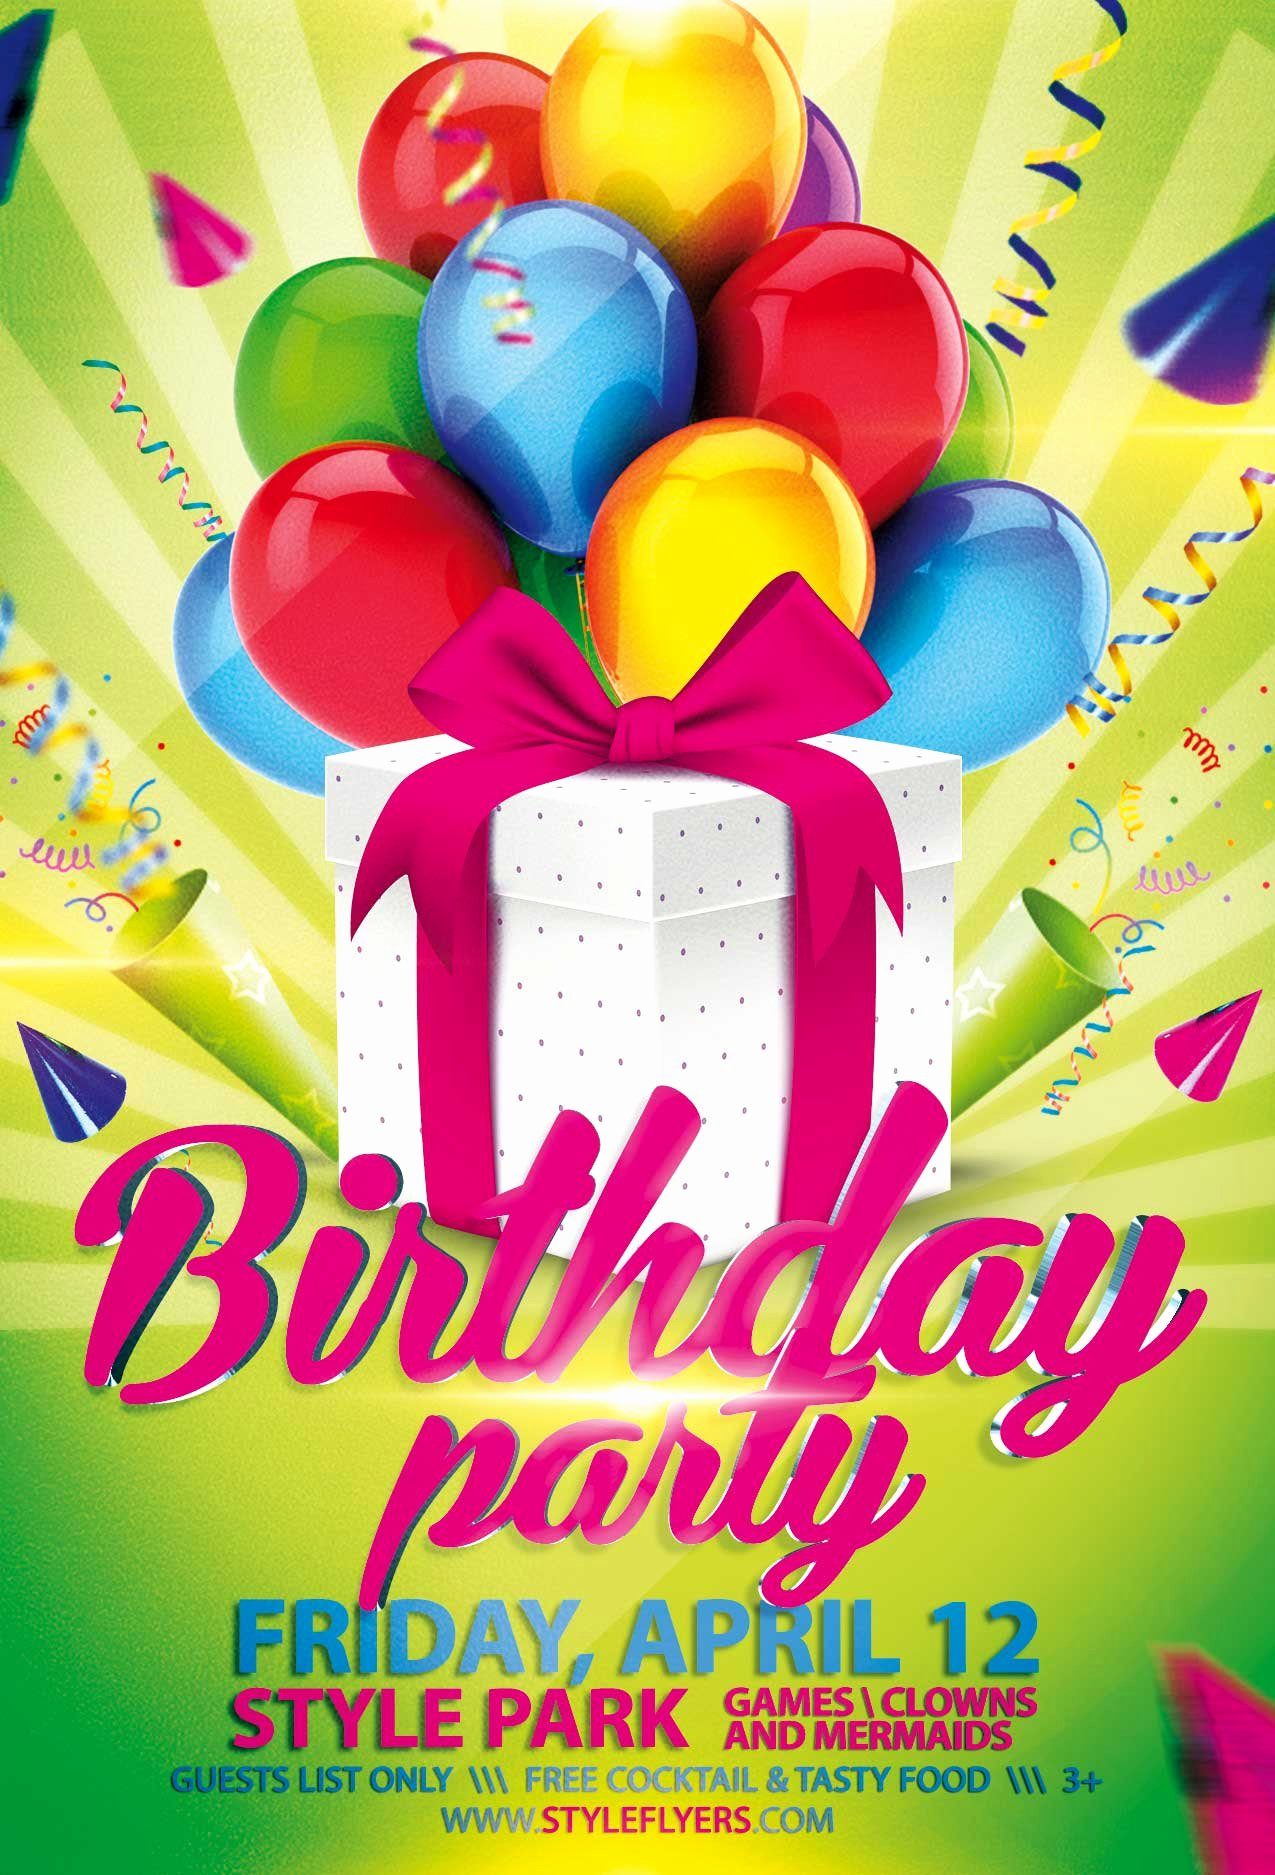 Birthday Party Flyer Template Elegant Birthday Party Psd Flyer Template with Animated Fully